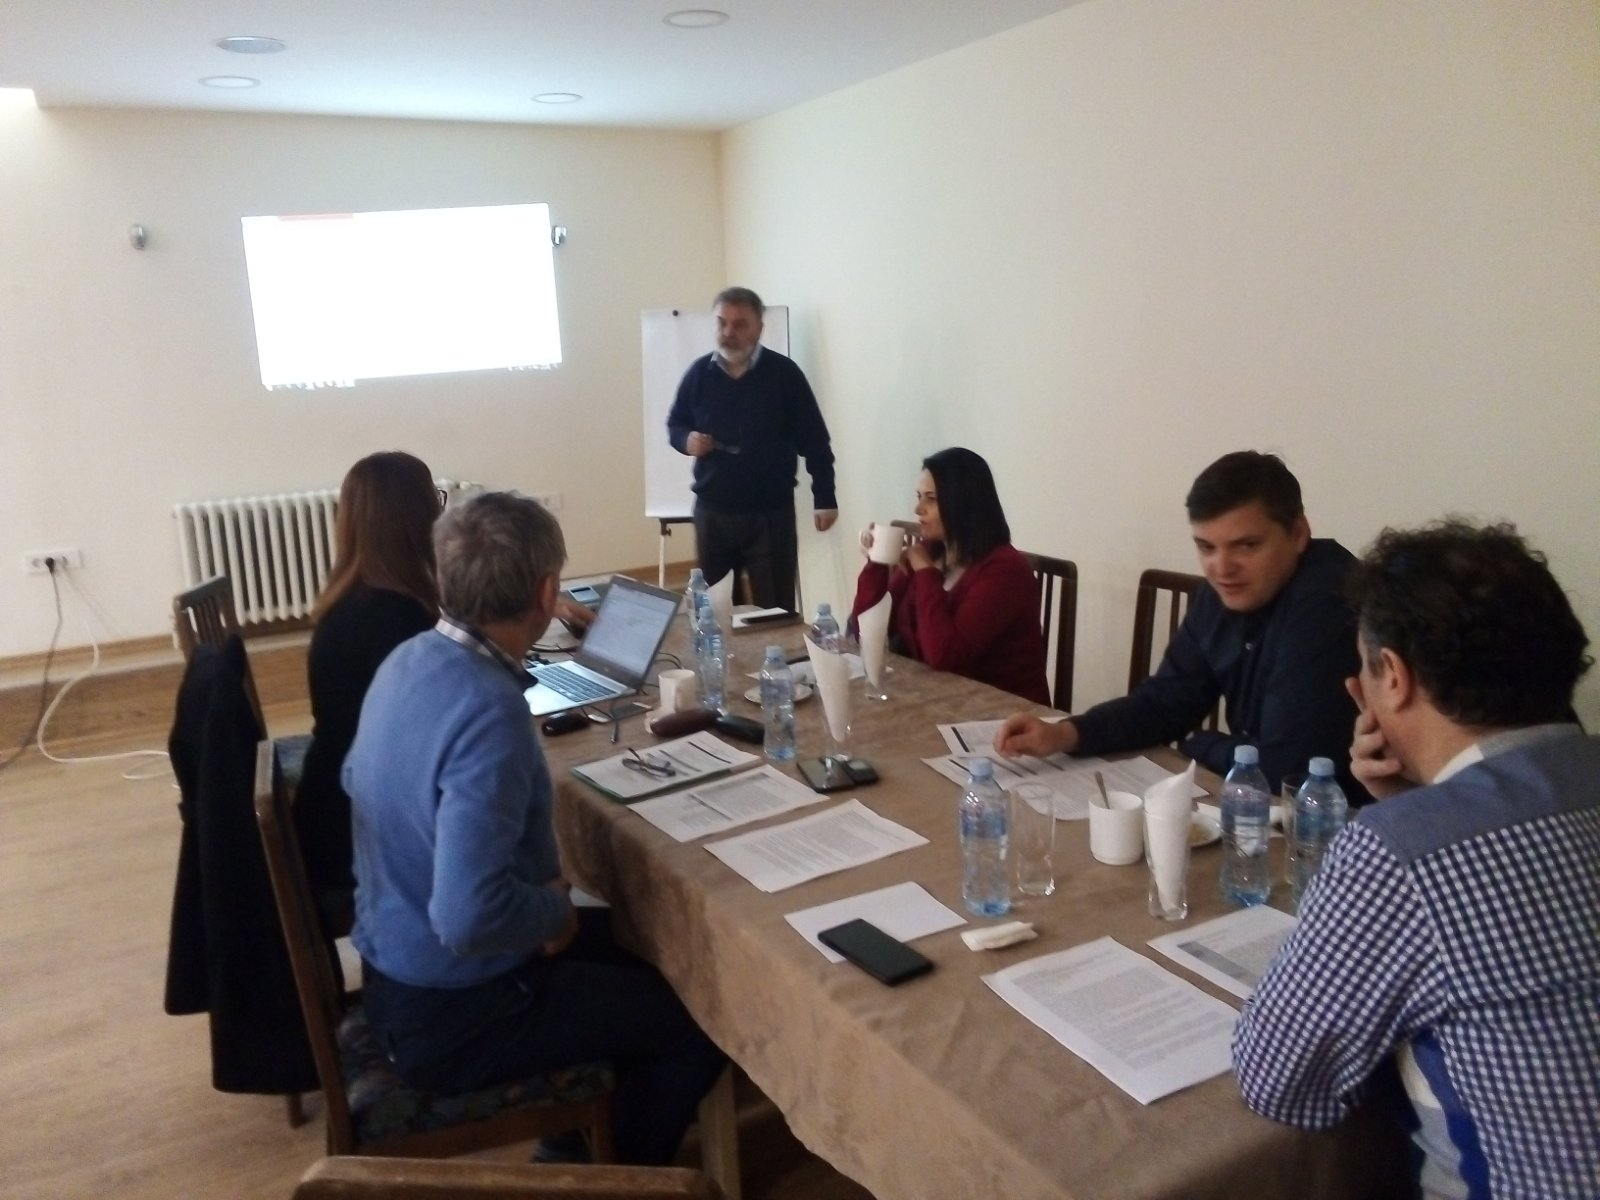 Final Meeting For The Hotel And Restaurant Technician Occupational Standard In Skopje